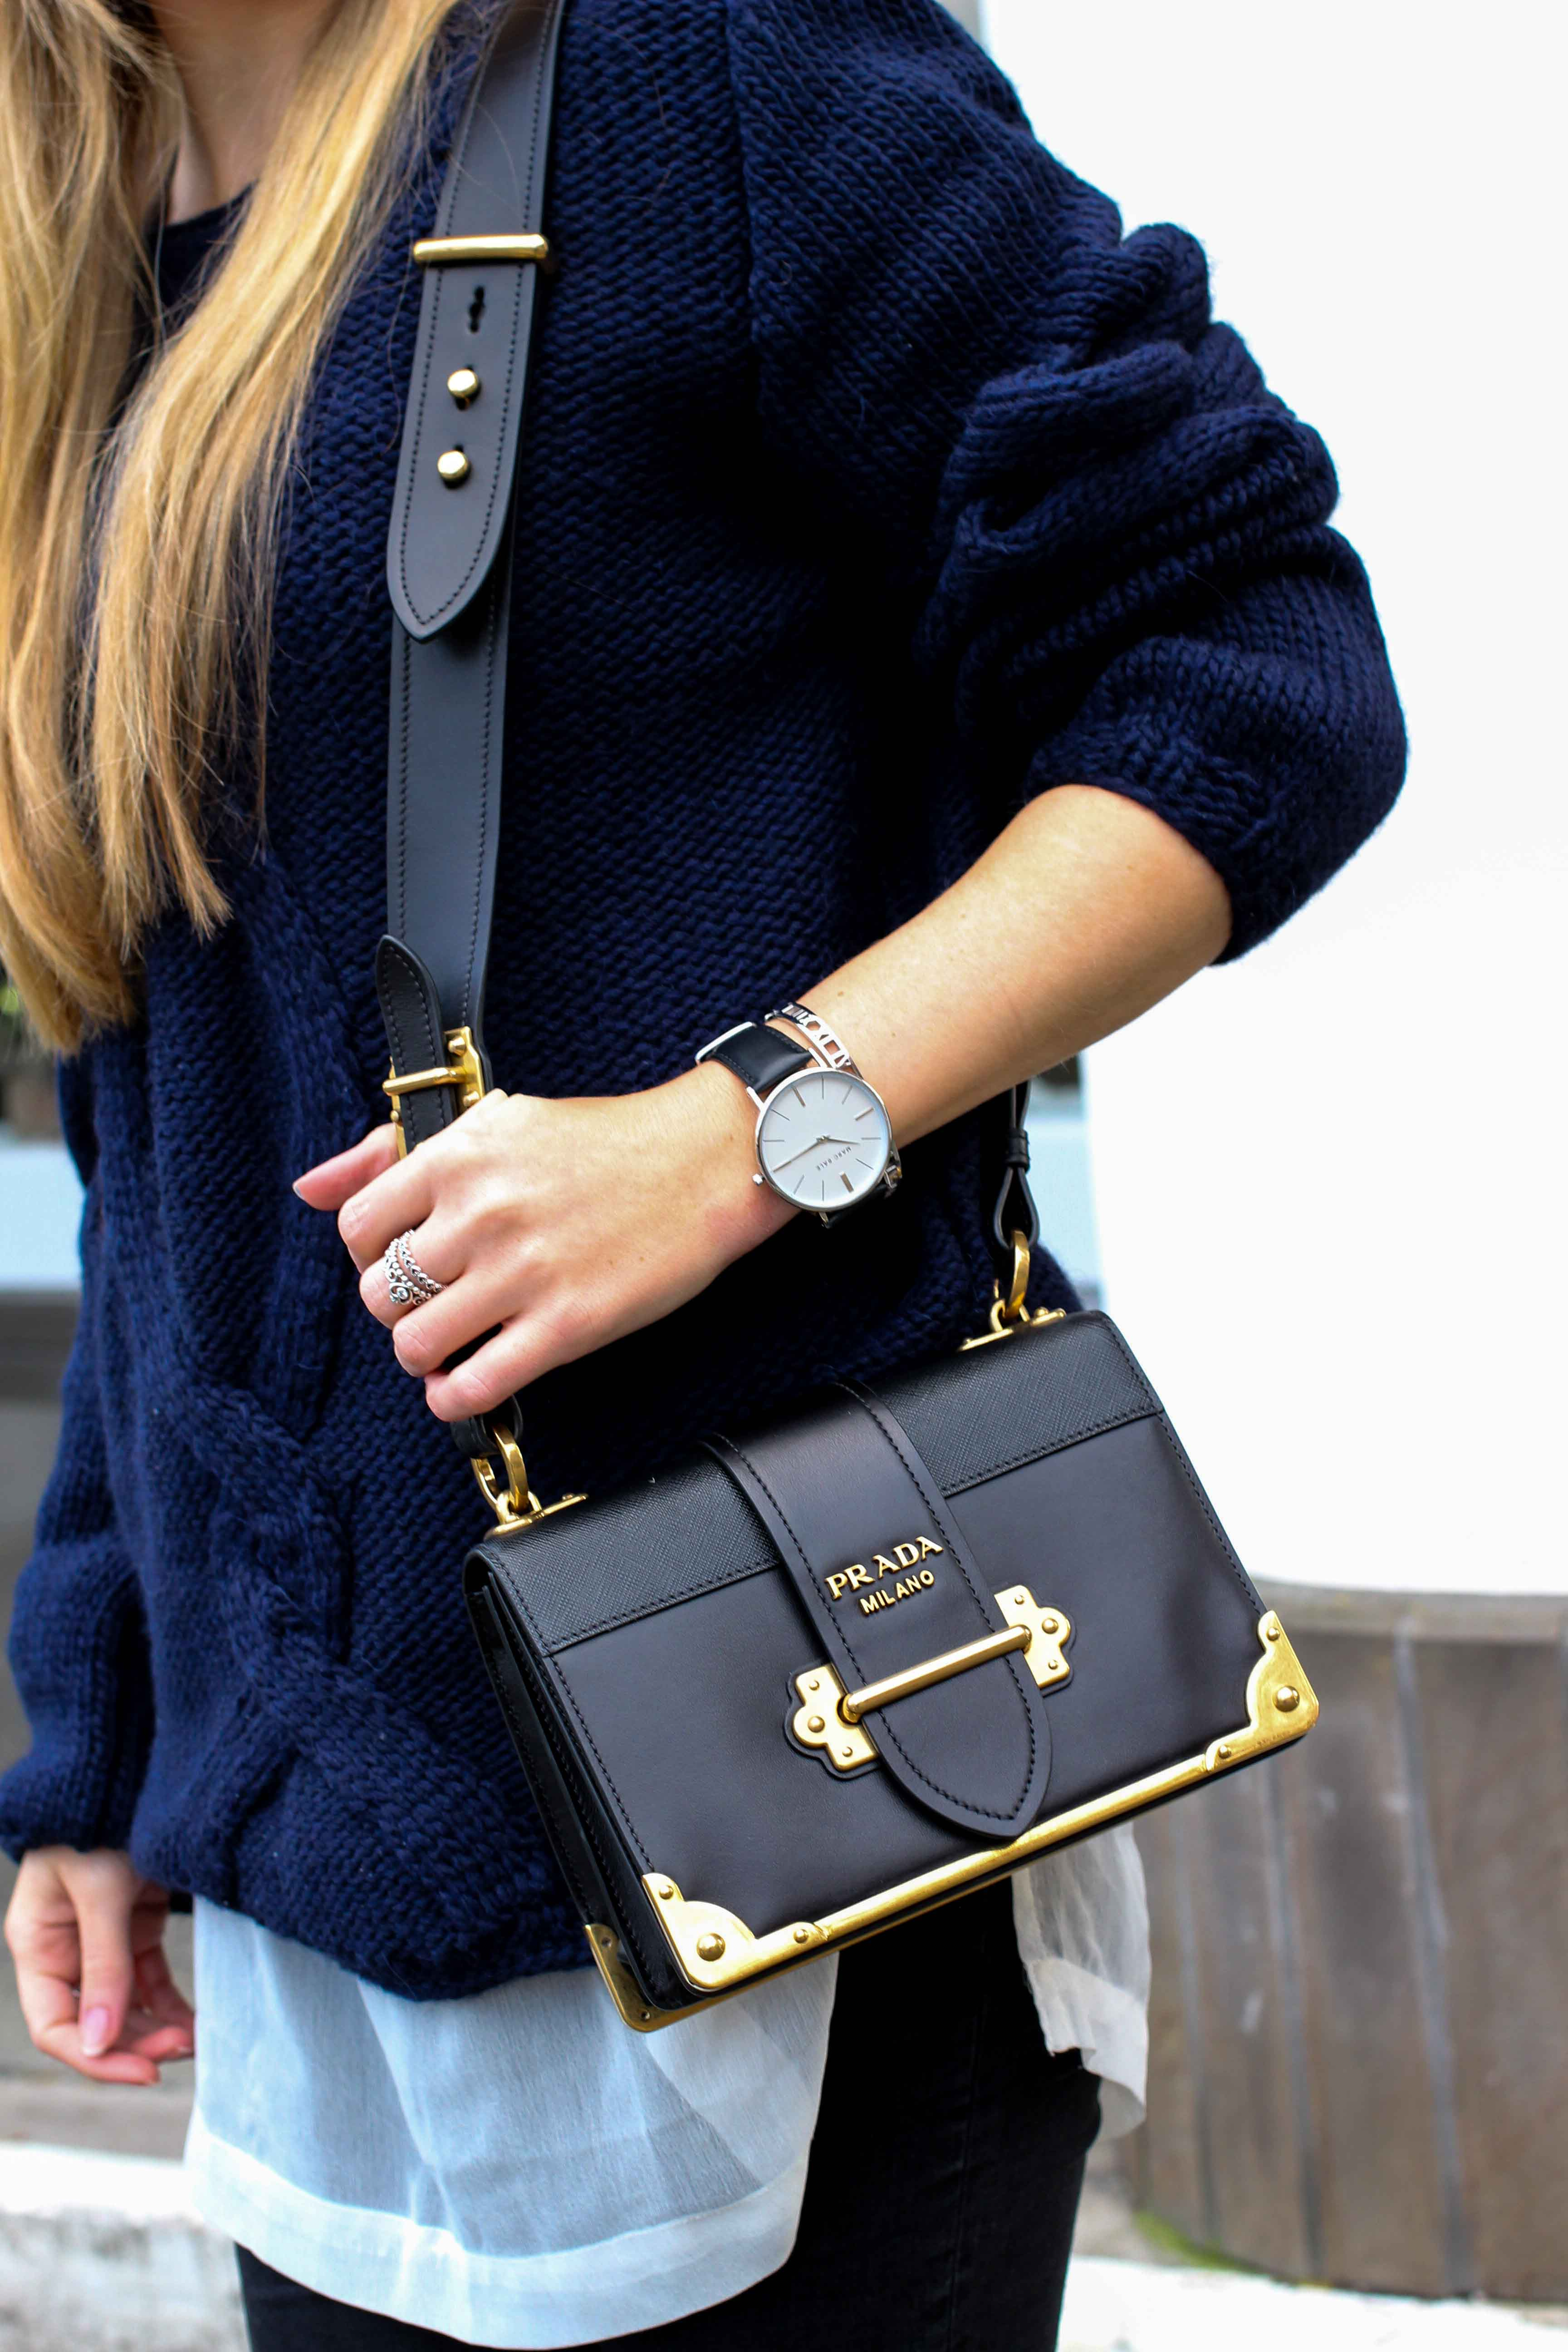 Streetstyle Wollpullover mit Cut-Outs Zopfmuster Prada Cahier Bag Outfit Blog 3